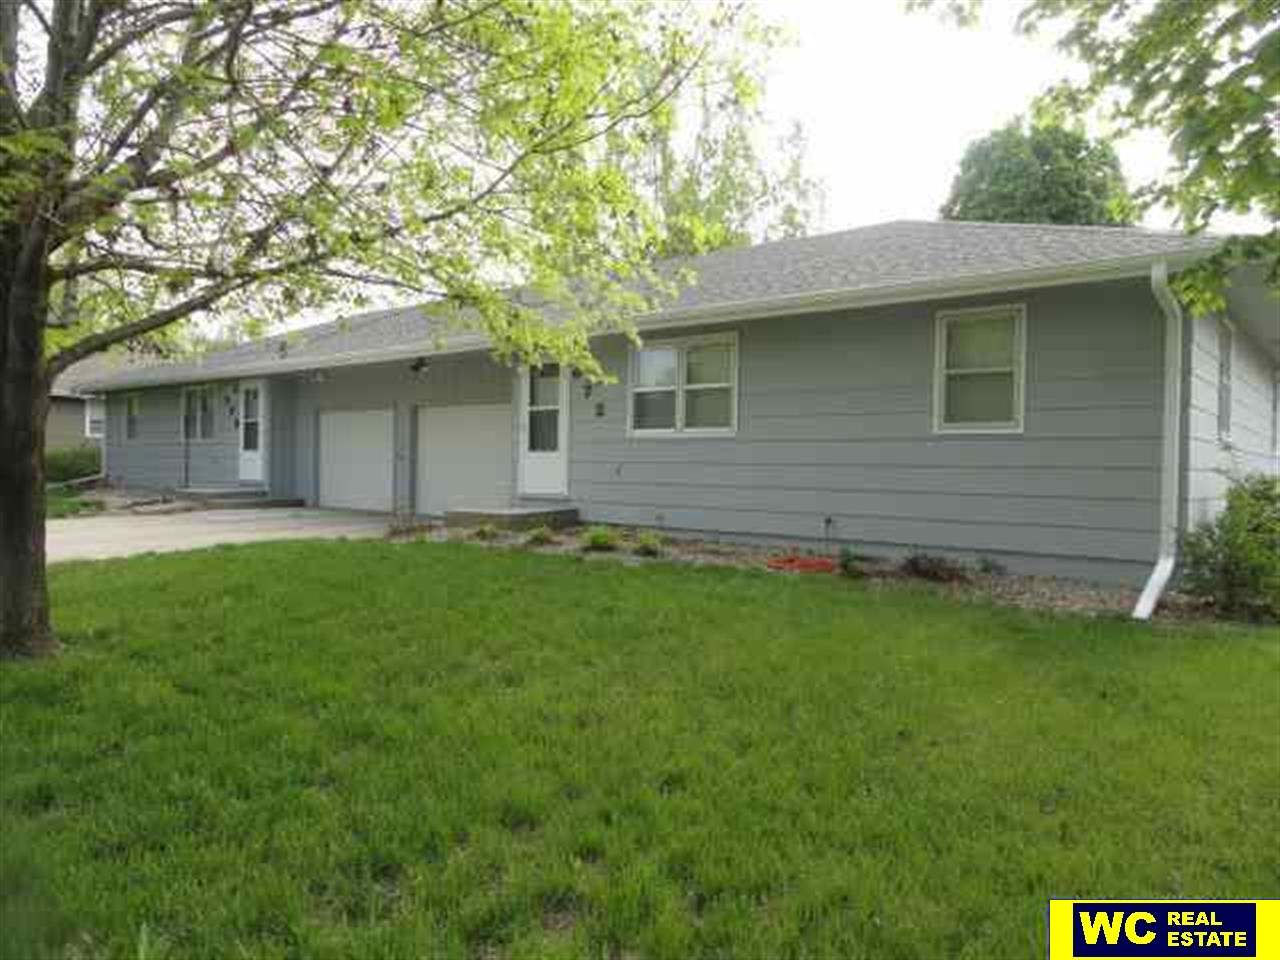 672 N 14th Ave, Blair, NE 68008